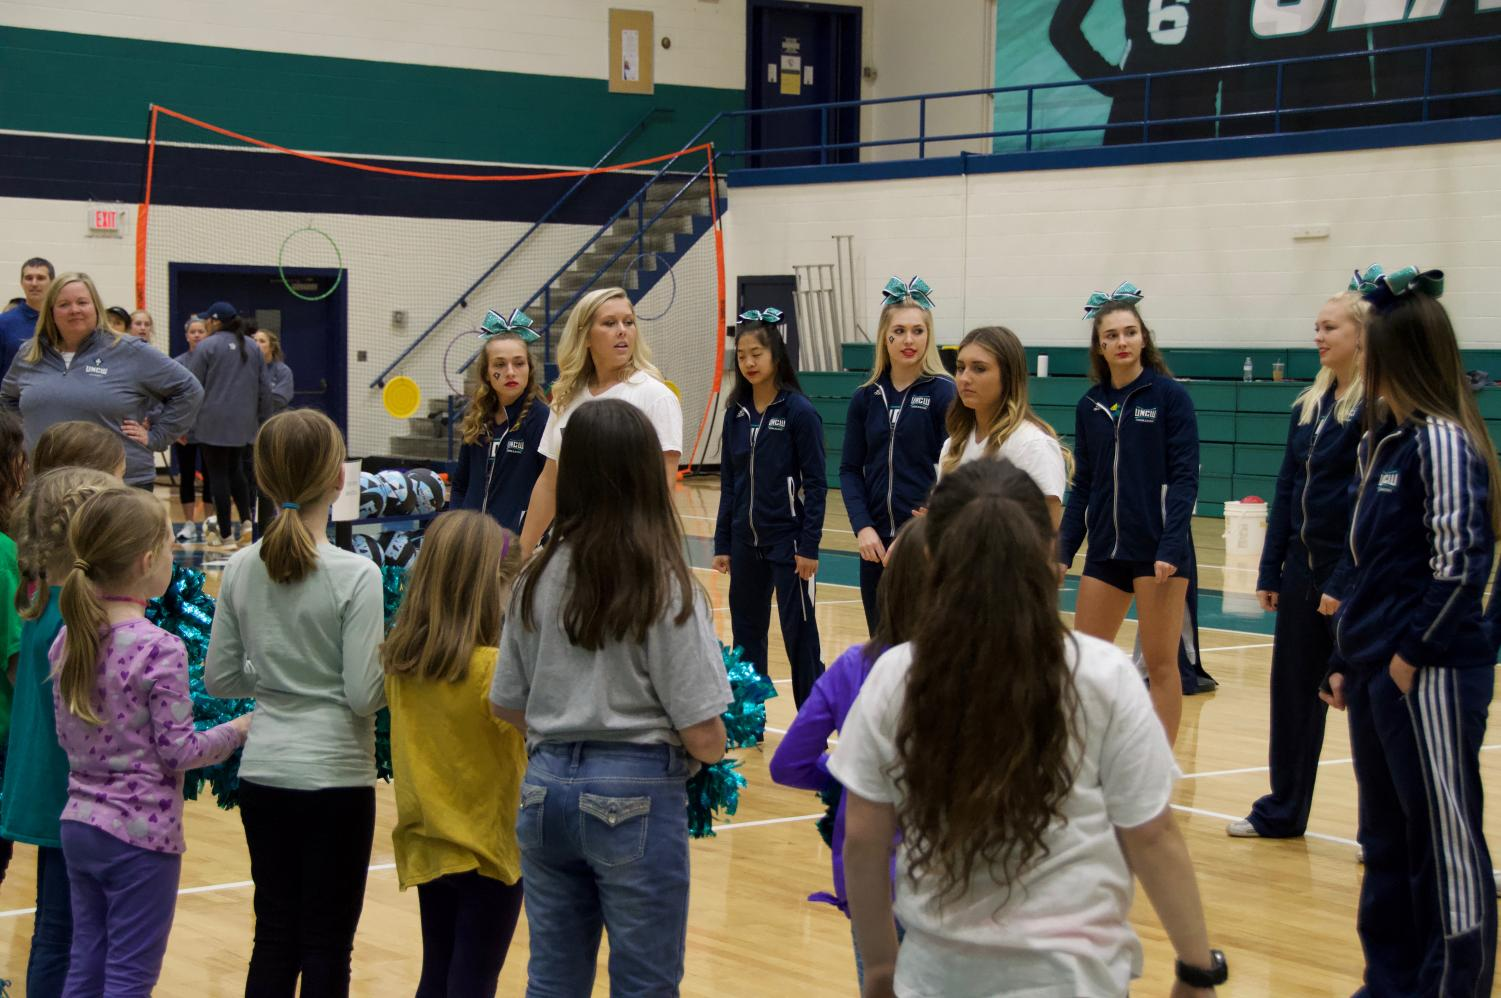 The+UNCW+Cheerleaders+teach+the+young+girls+a+cheer